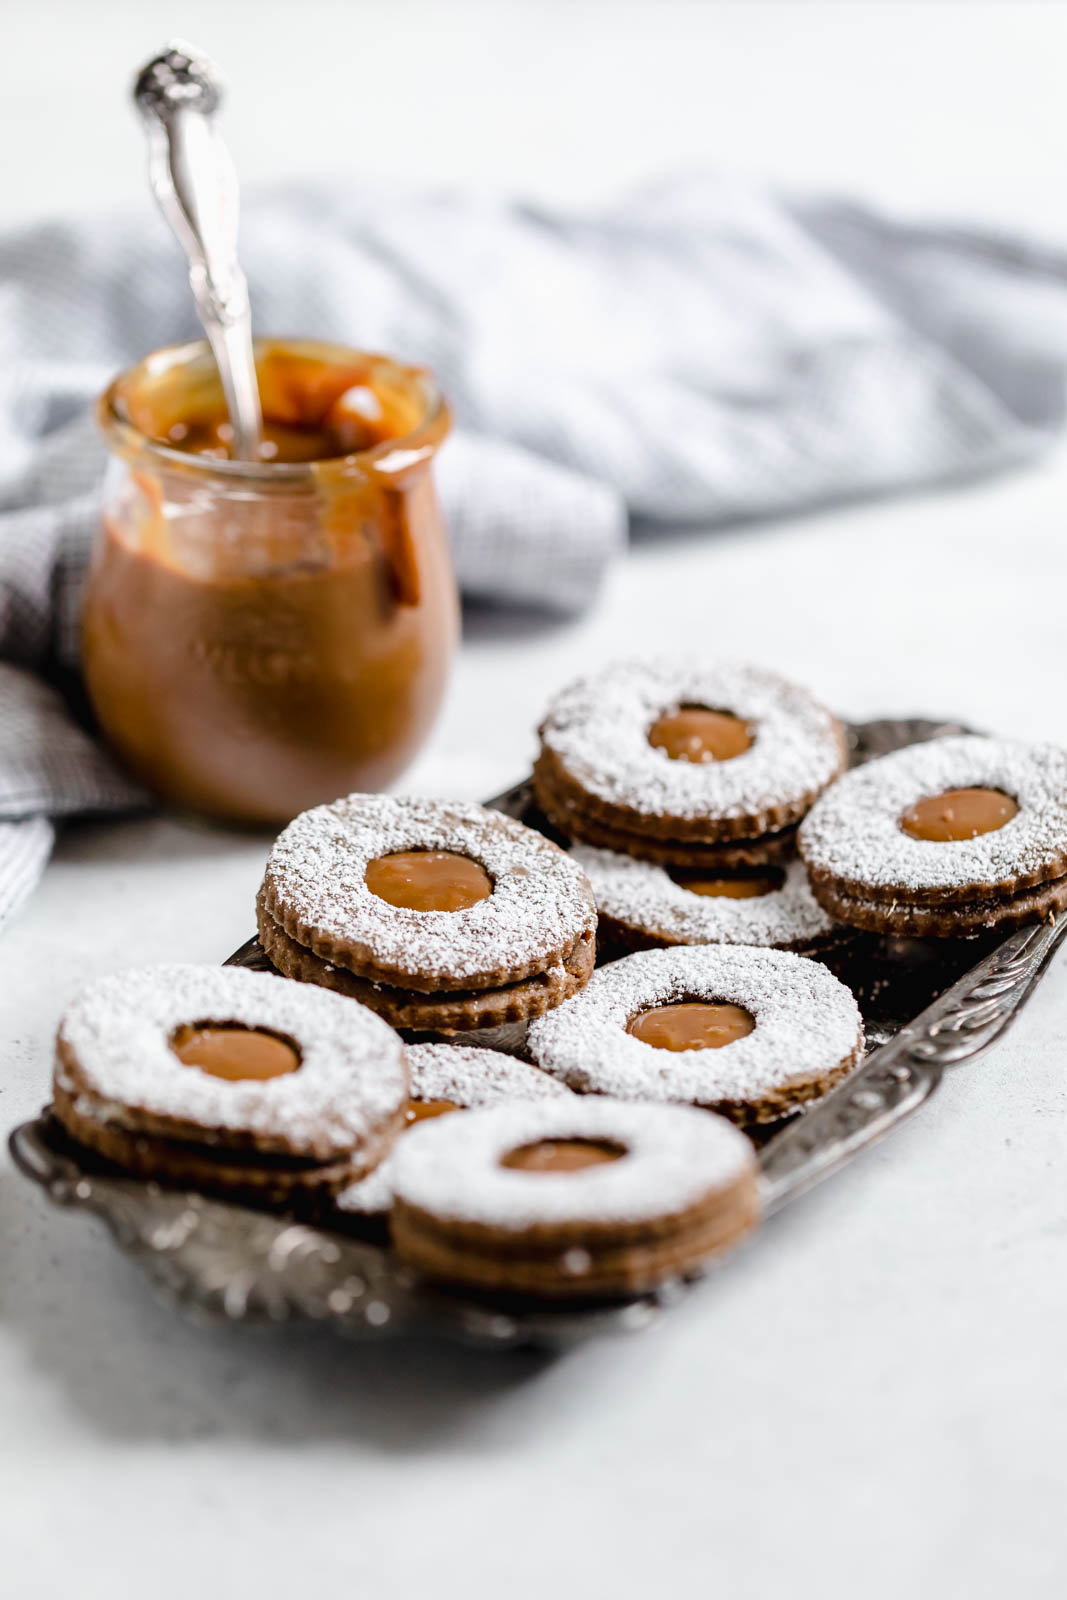 Santa, meet your new favorite cookie. Seriously obsessed with these Gingerbread Linzer Cookies with dulce de leche centers!